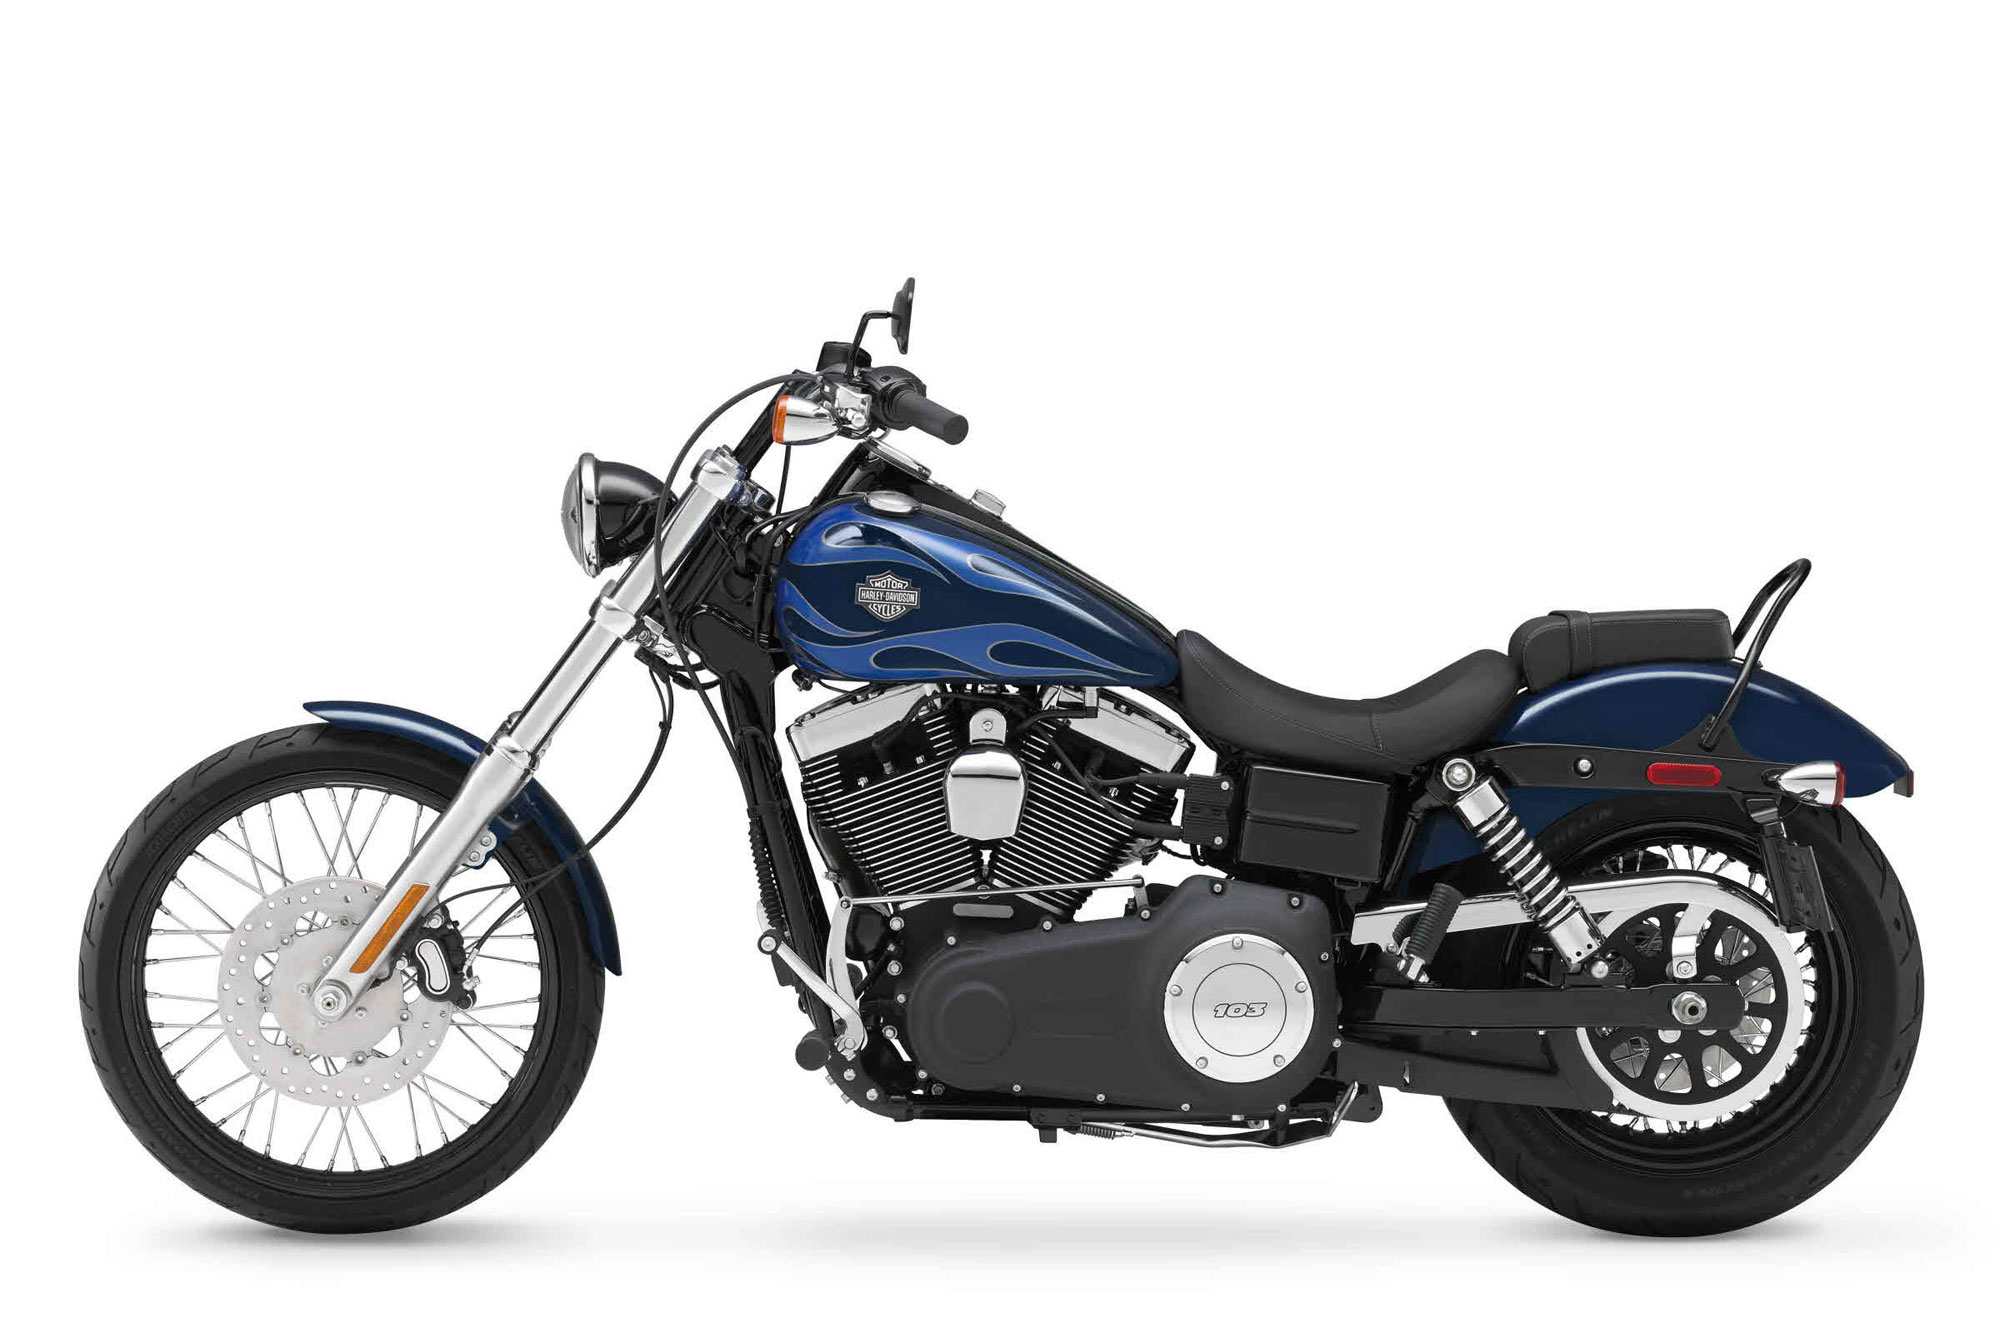 hight resolution of 2011 wide glide wiring diagram wiring libraryharley davidson fxdwg dyna wide glide 2011 1